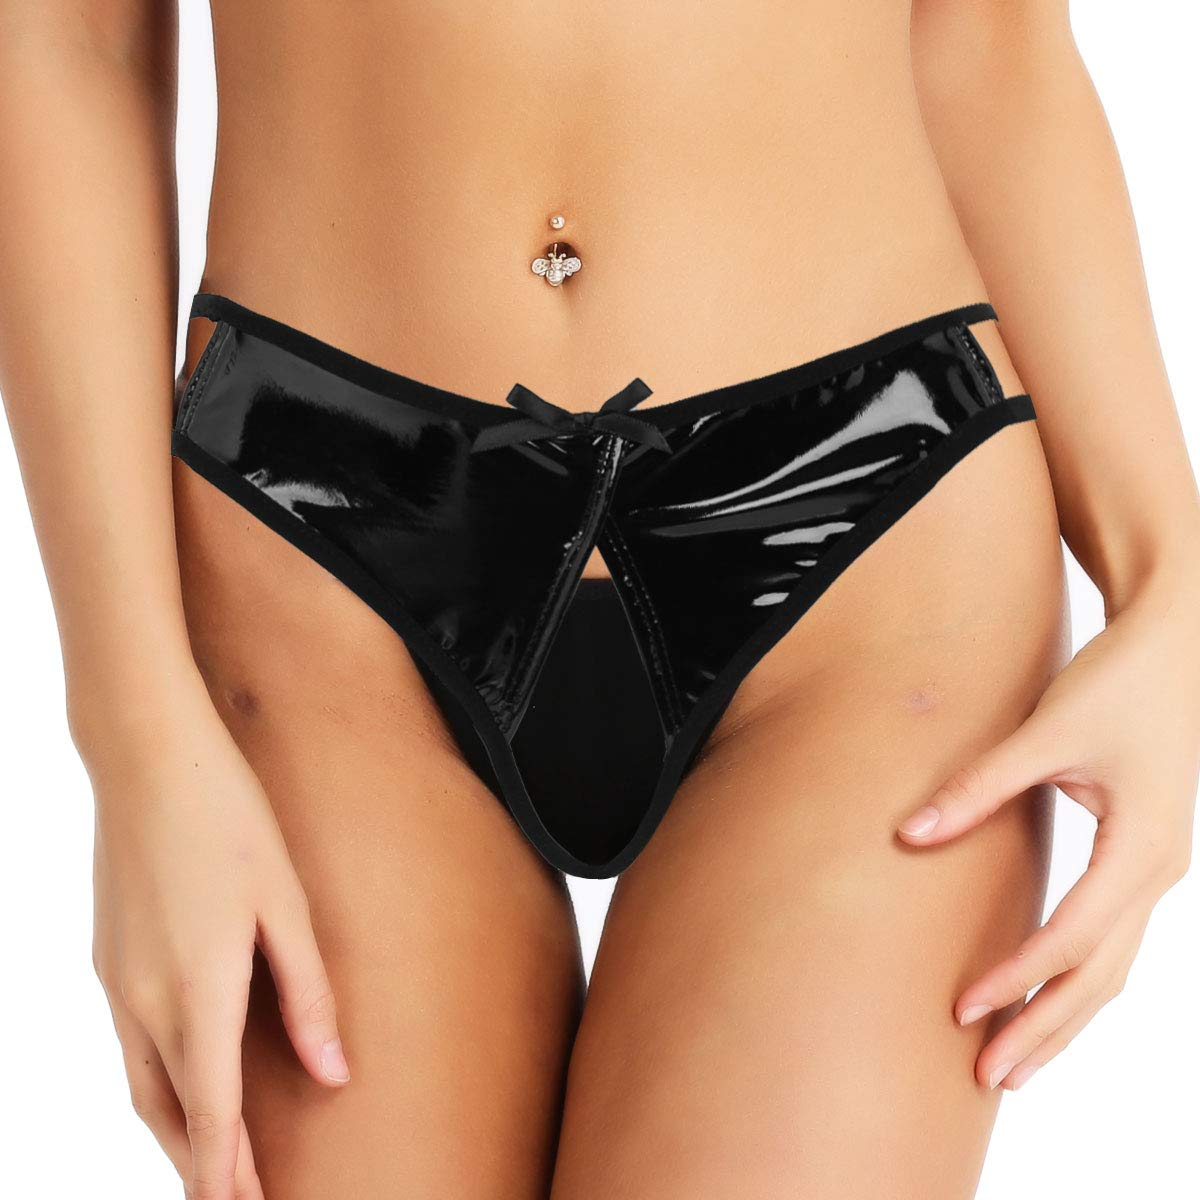 Freebily Women PVC Leather Wet Look Open Crotch High Cut Mini Briefs Panties Underwear